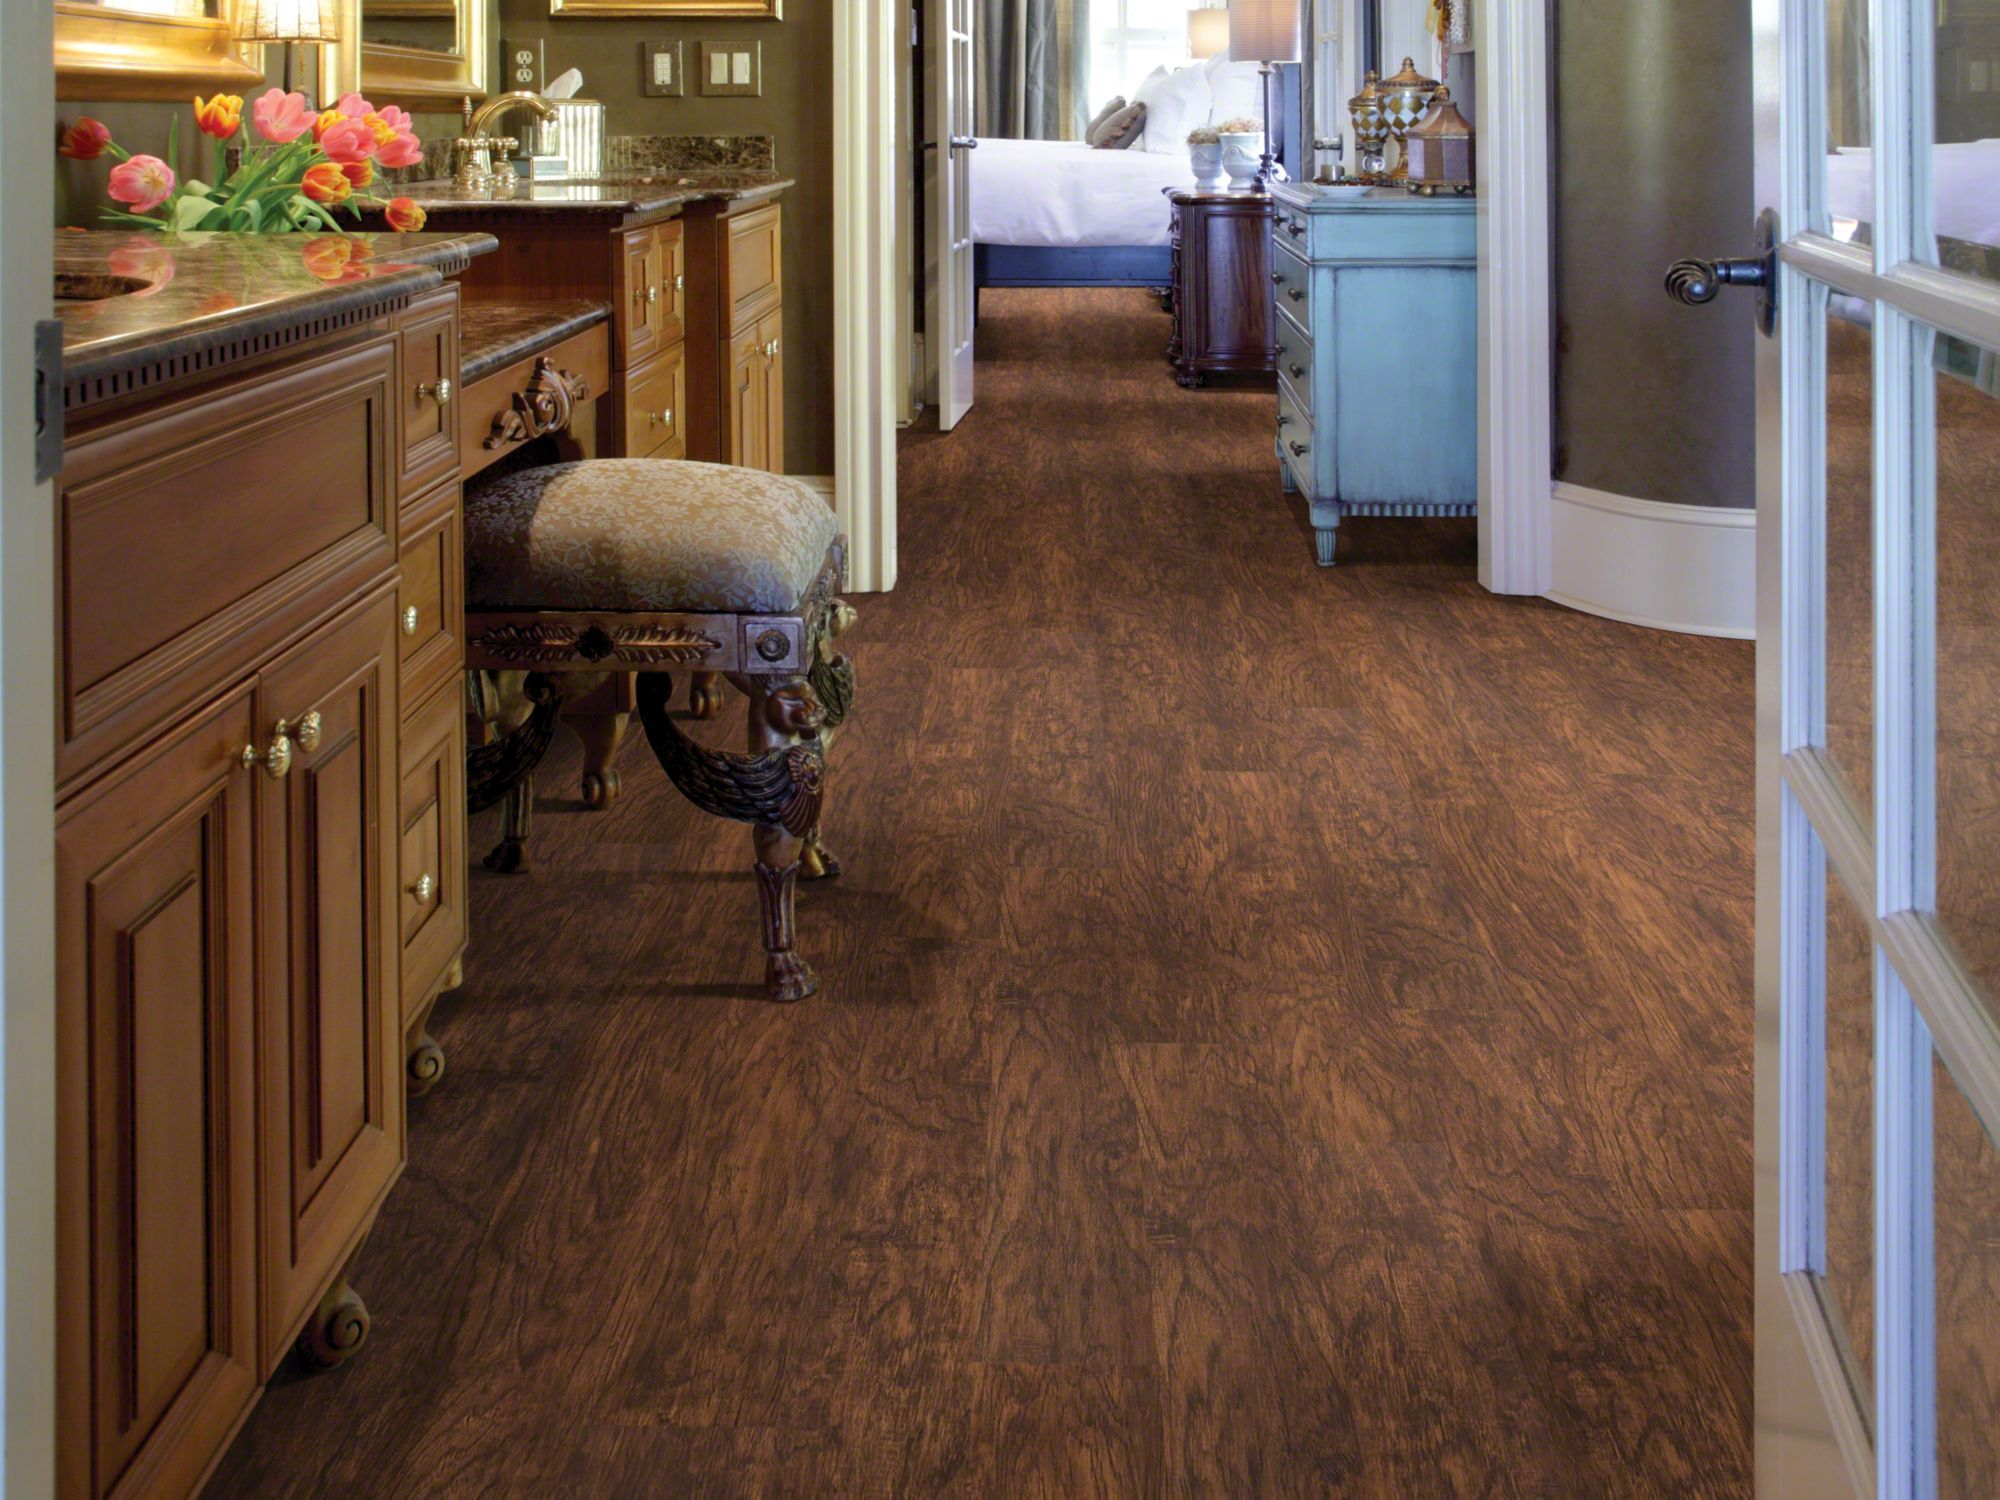 Check out this beautiful flooring keystone carpets offersaviator shaws insight plank propeller brown resilient vinyl flooring is the modern choice for beautiful durable floors wide variety of patterns colors dailygadgetfo Images